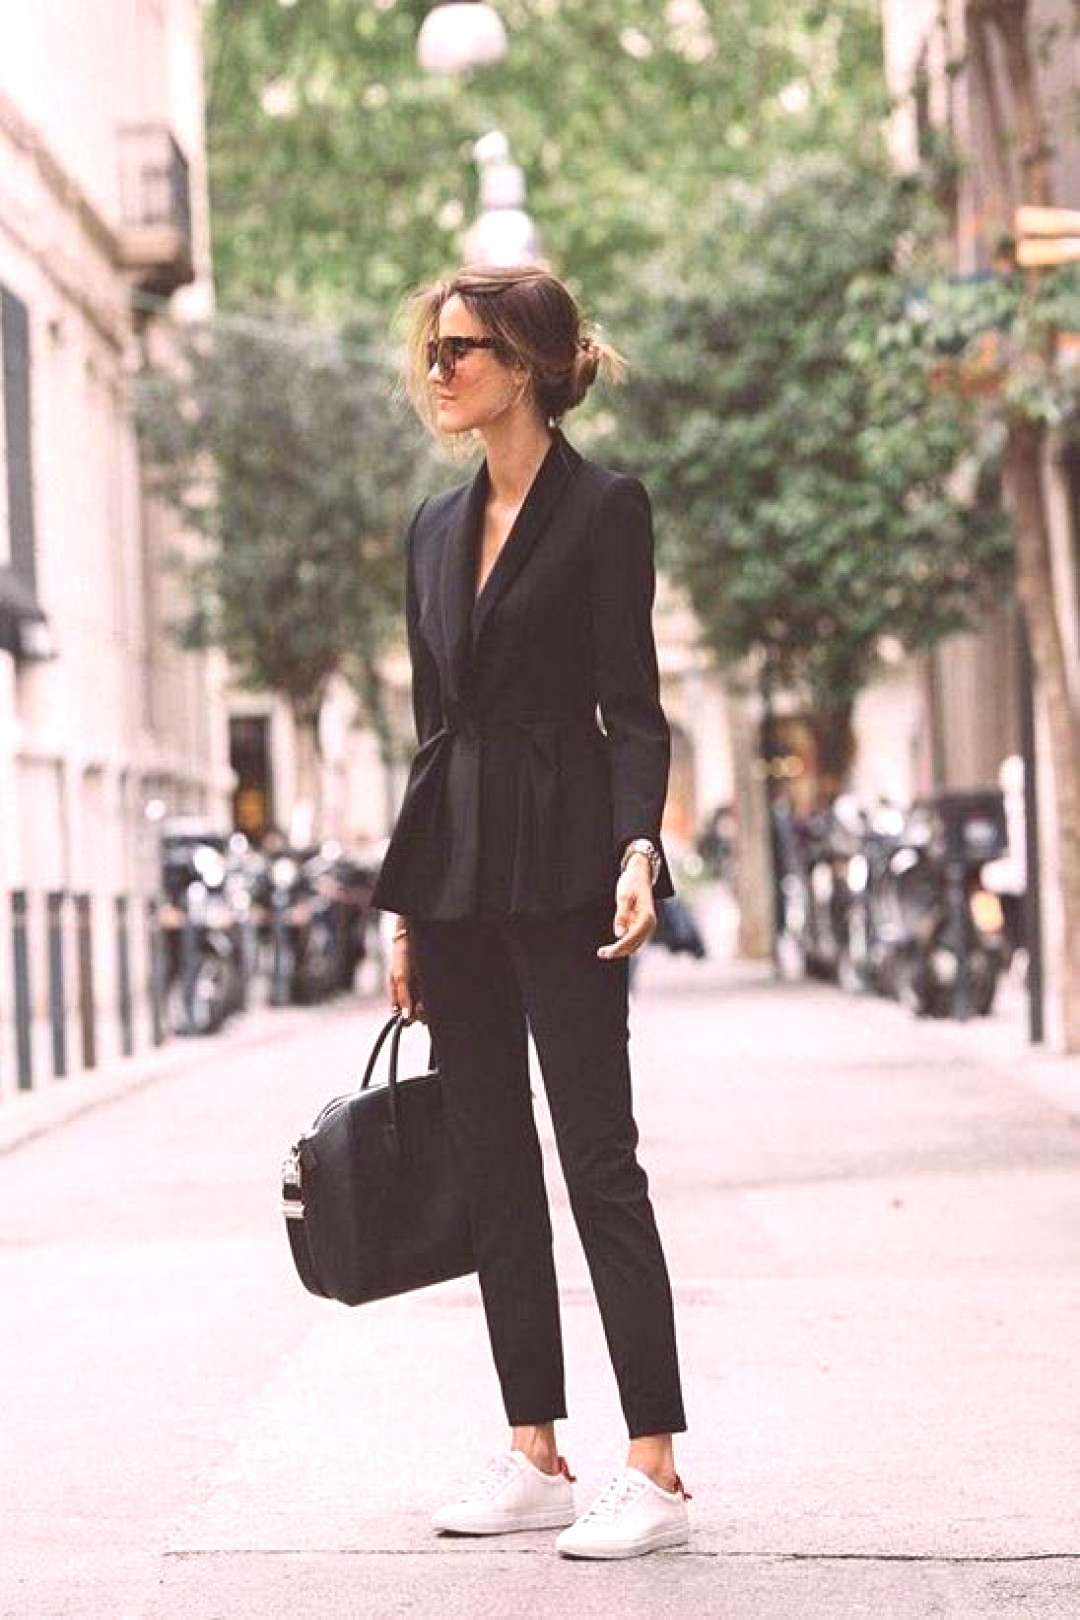 How to style a chic all black outfit. All black blazer and slacks. Fashion lookbook. Outfit ideas.